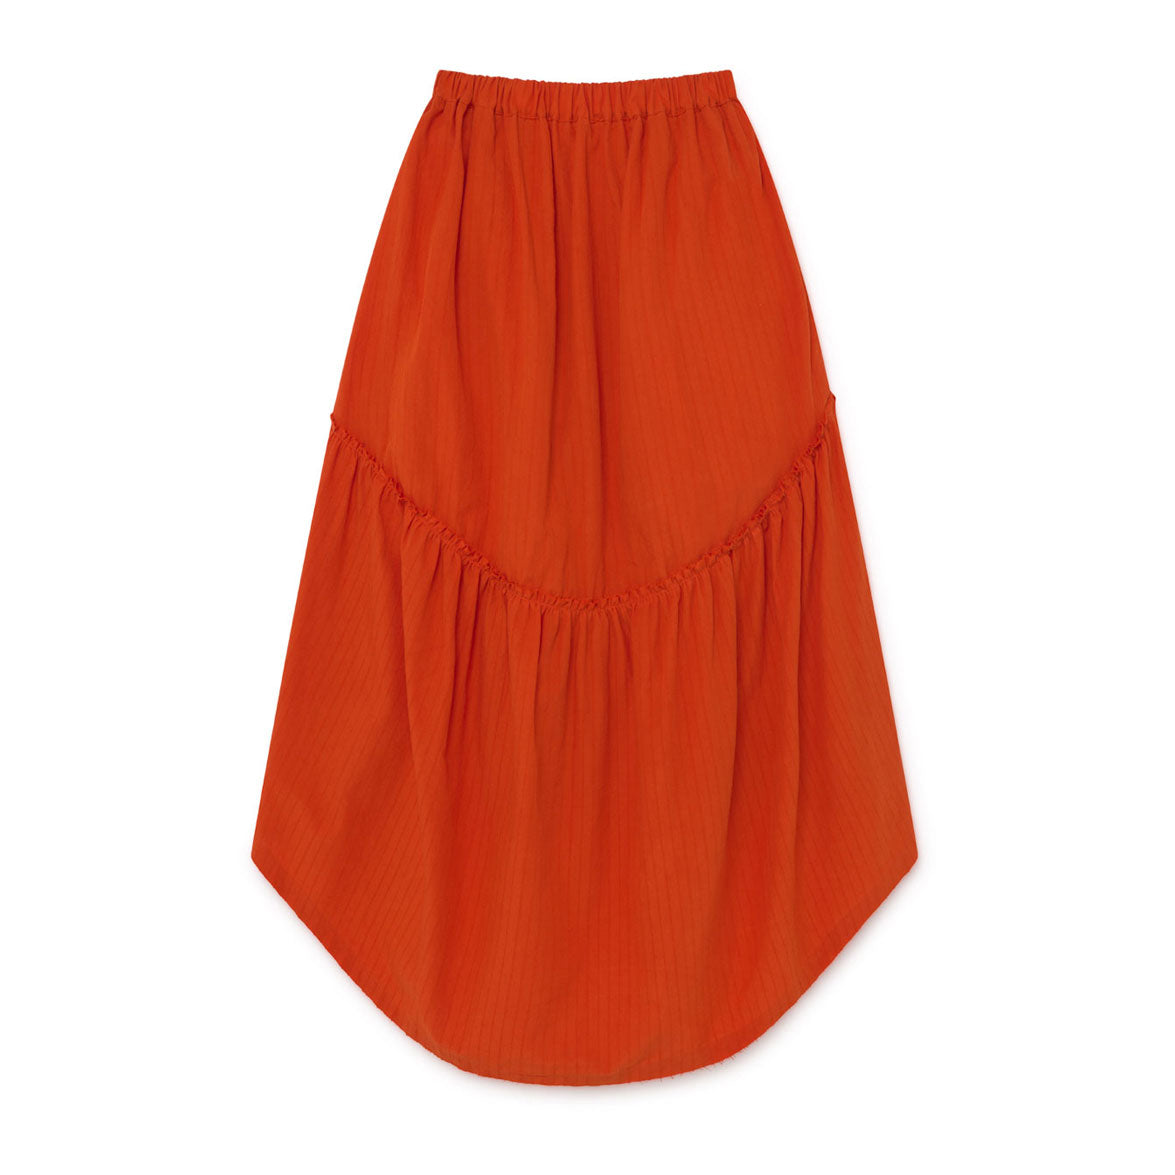 Little Creative Factory Orange Crushed Cotton Skirt